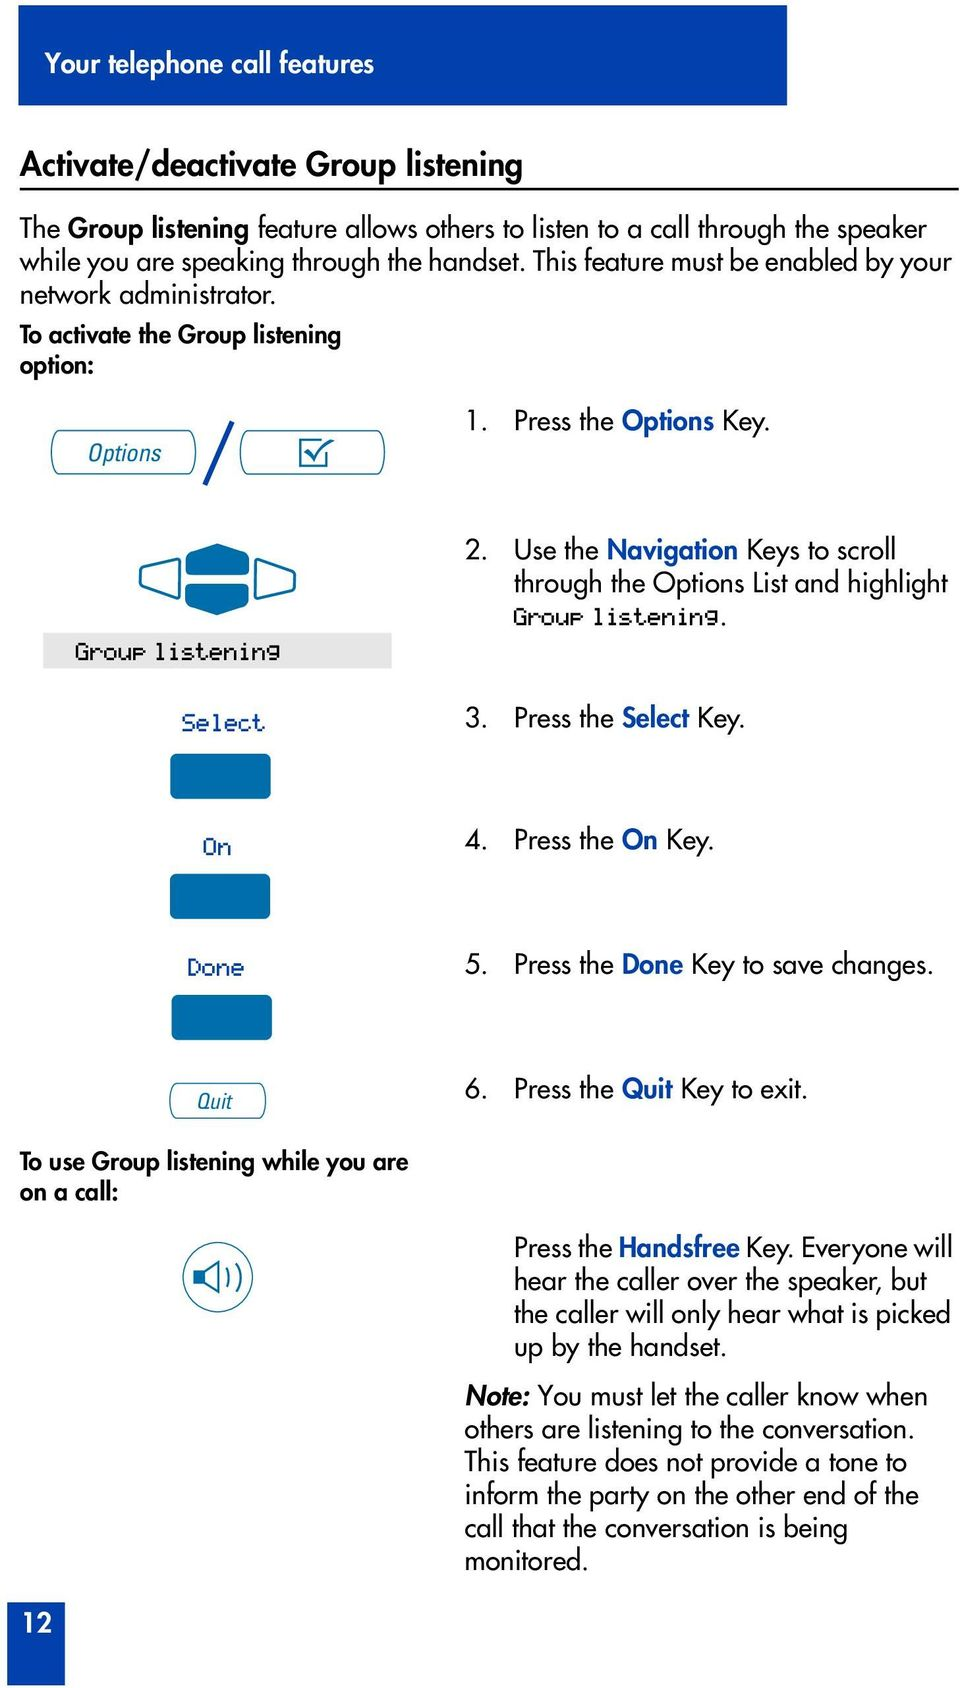 Use the Navigation Keys to scroll through the Options List and highlight Group listening. 3. Press the Select Key. On 4. Press the On Key. Done 5. Press the Done Key to save changes. Quit 6.